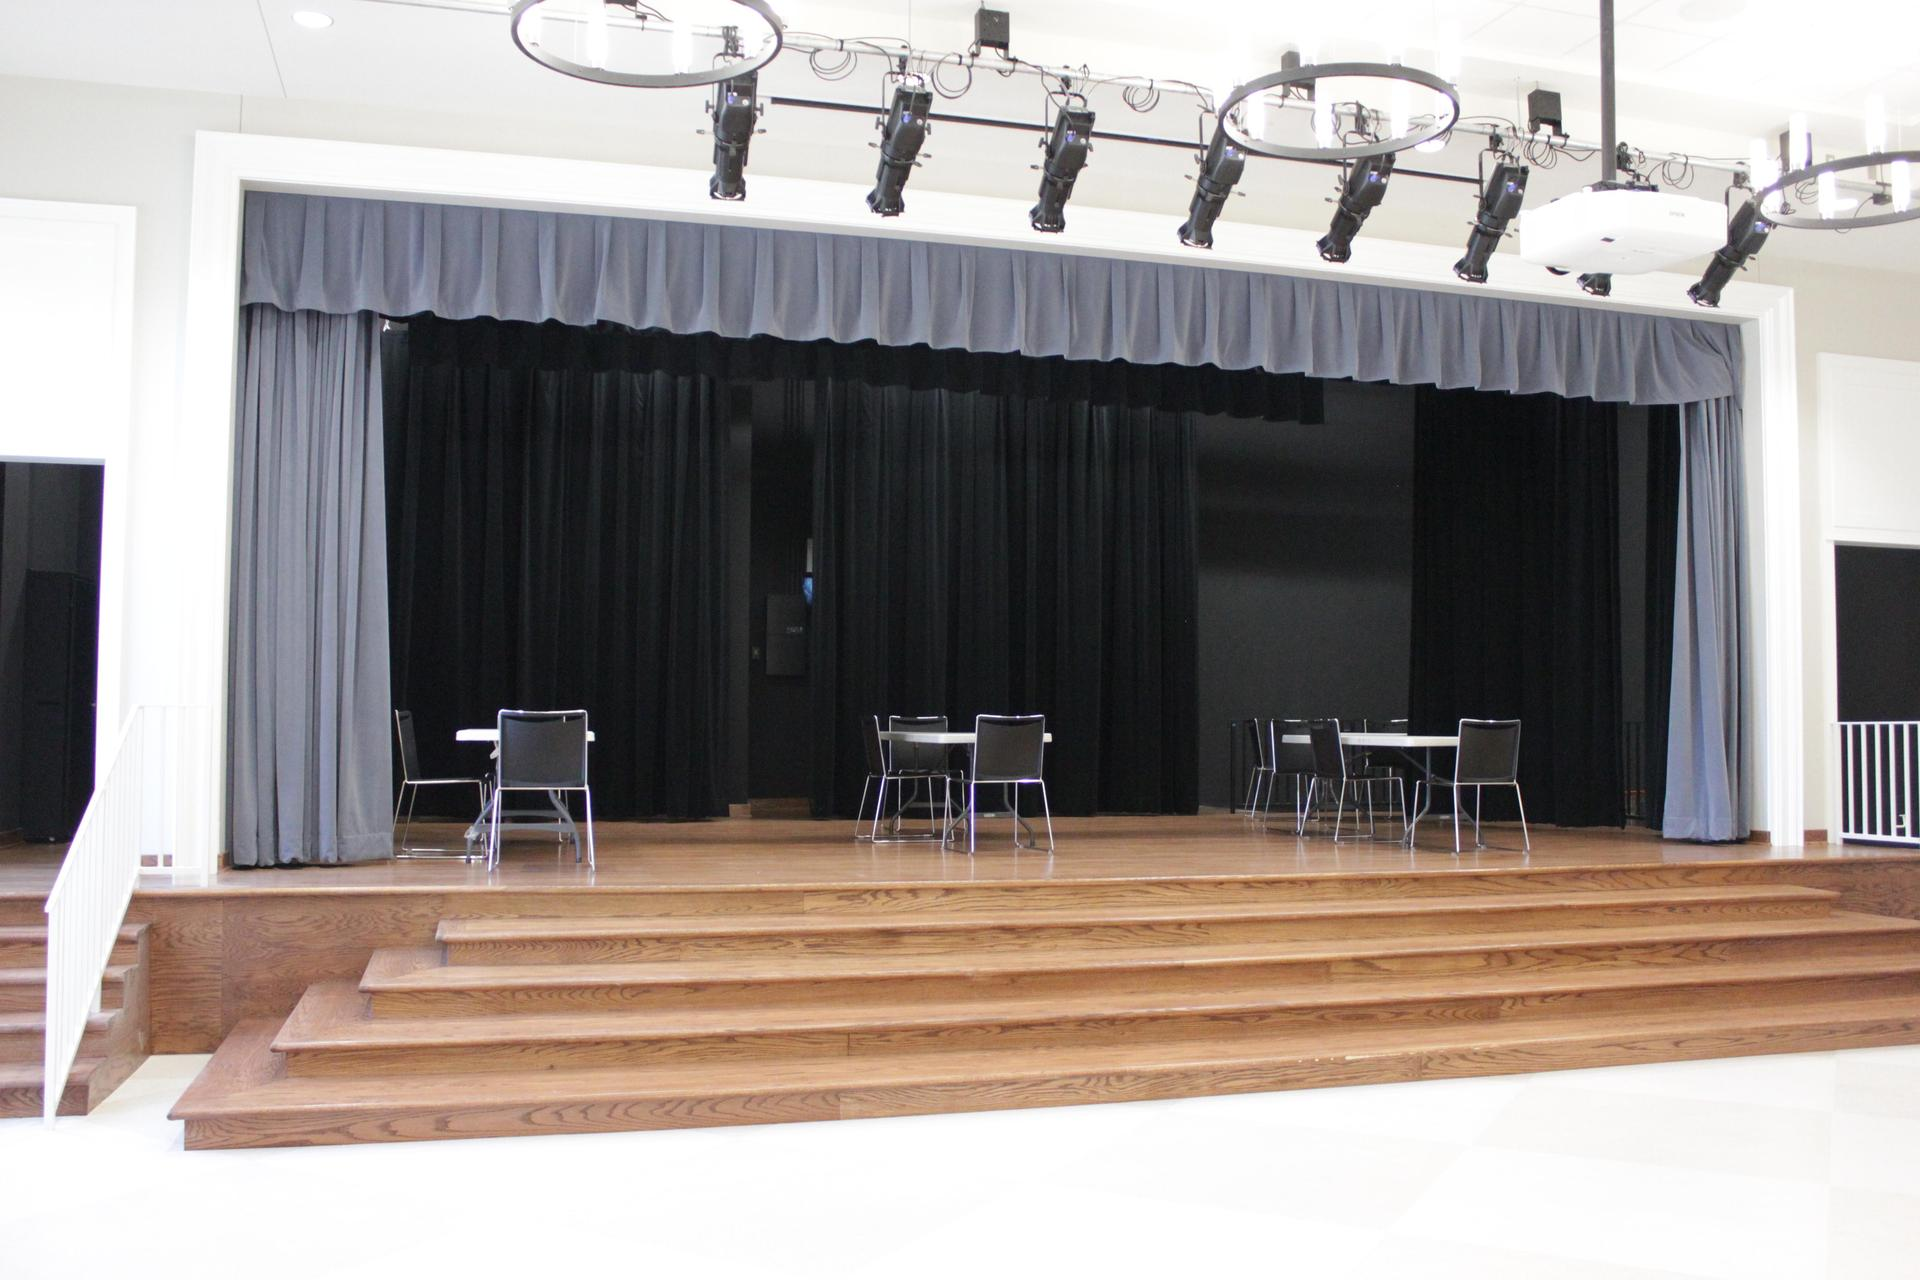 Hyer stage curtains 01221